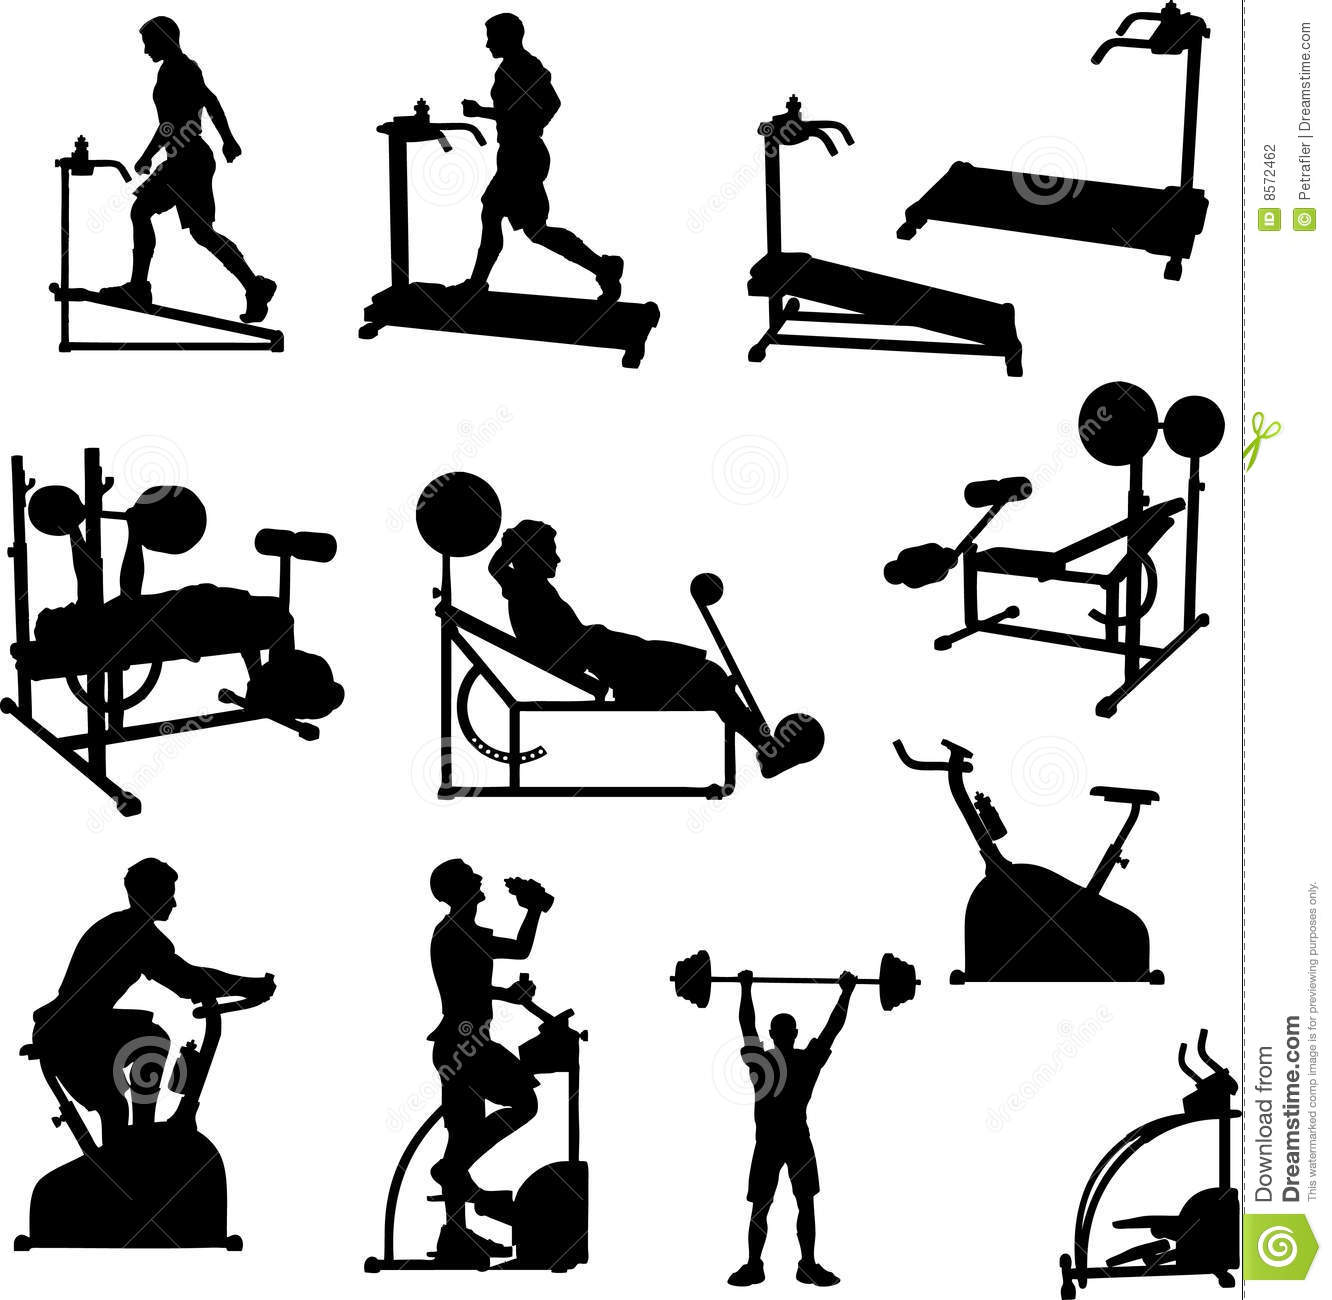 Workout Photography: Male Excercise Silhouettes Stock Vector. Illustration Of